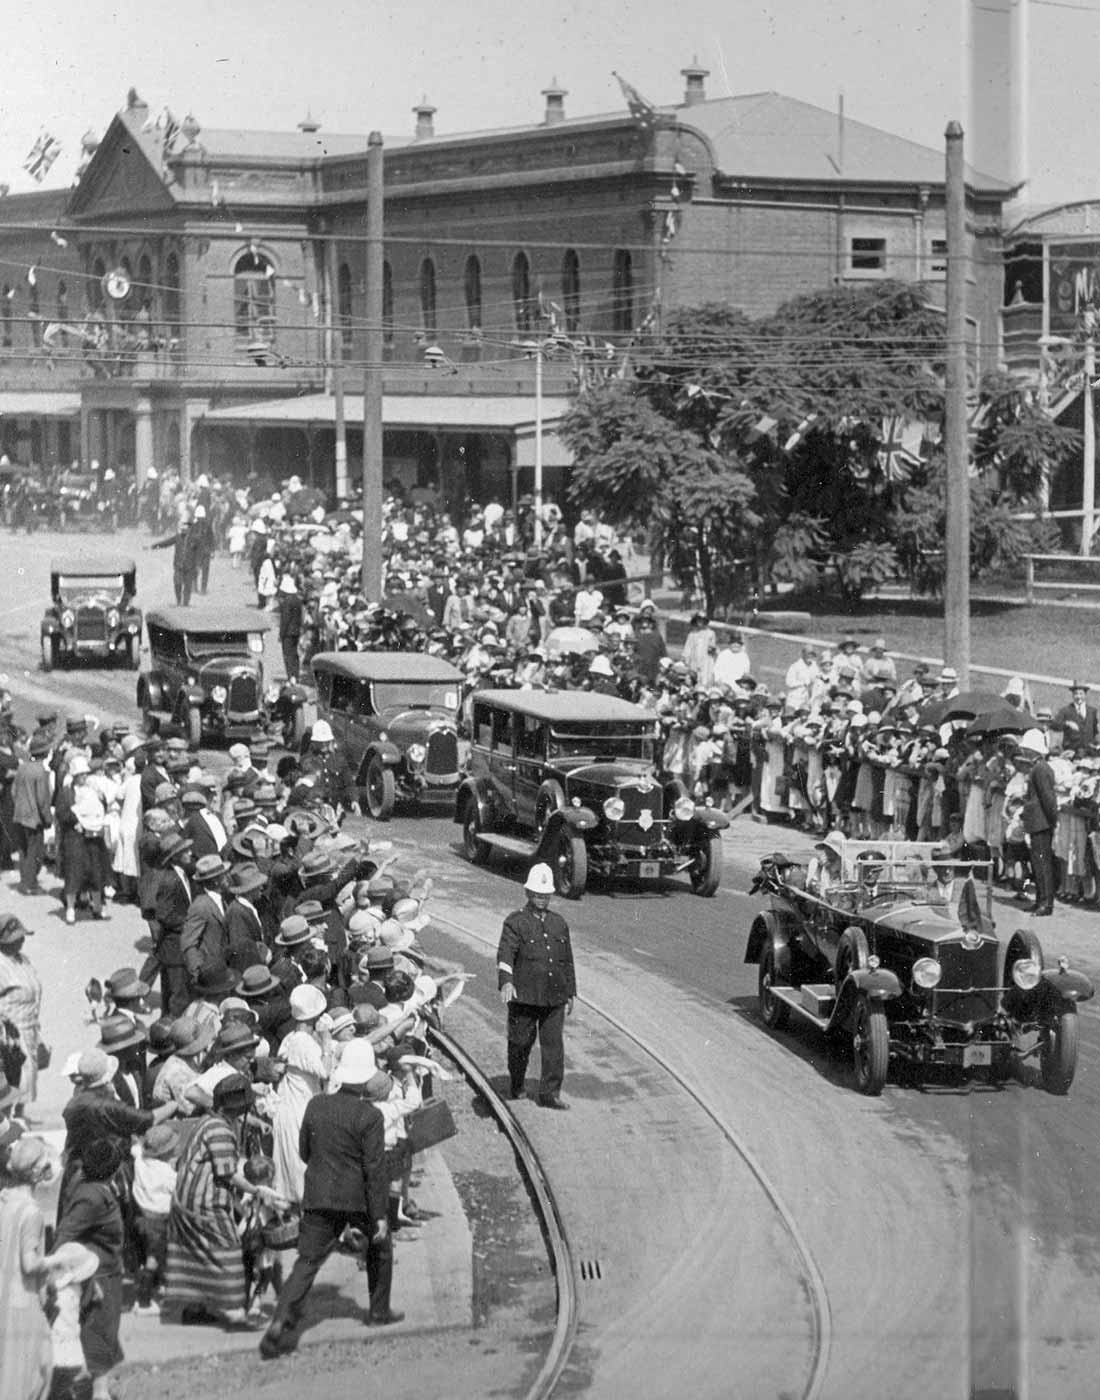 A black and white image showing five cars in a procession travelling past the South Brisbane Railway Station. Crowds line the streets with uniformed police officers patrolling. - click to view larger image